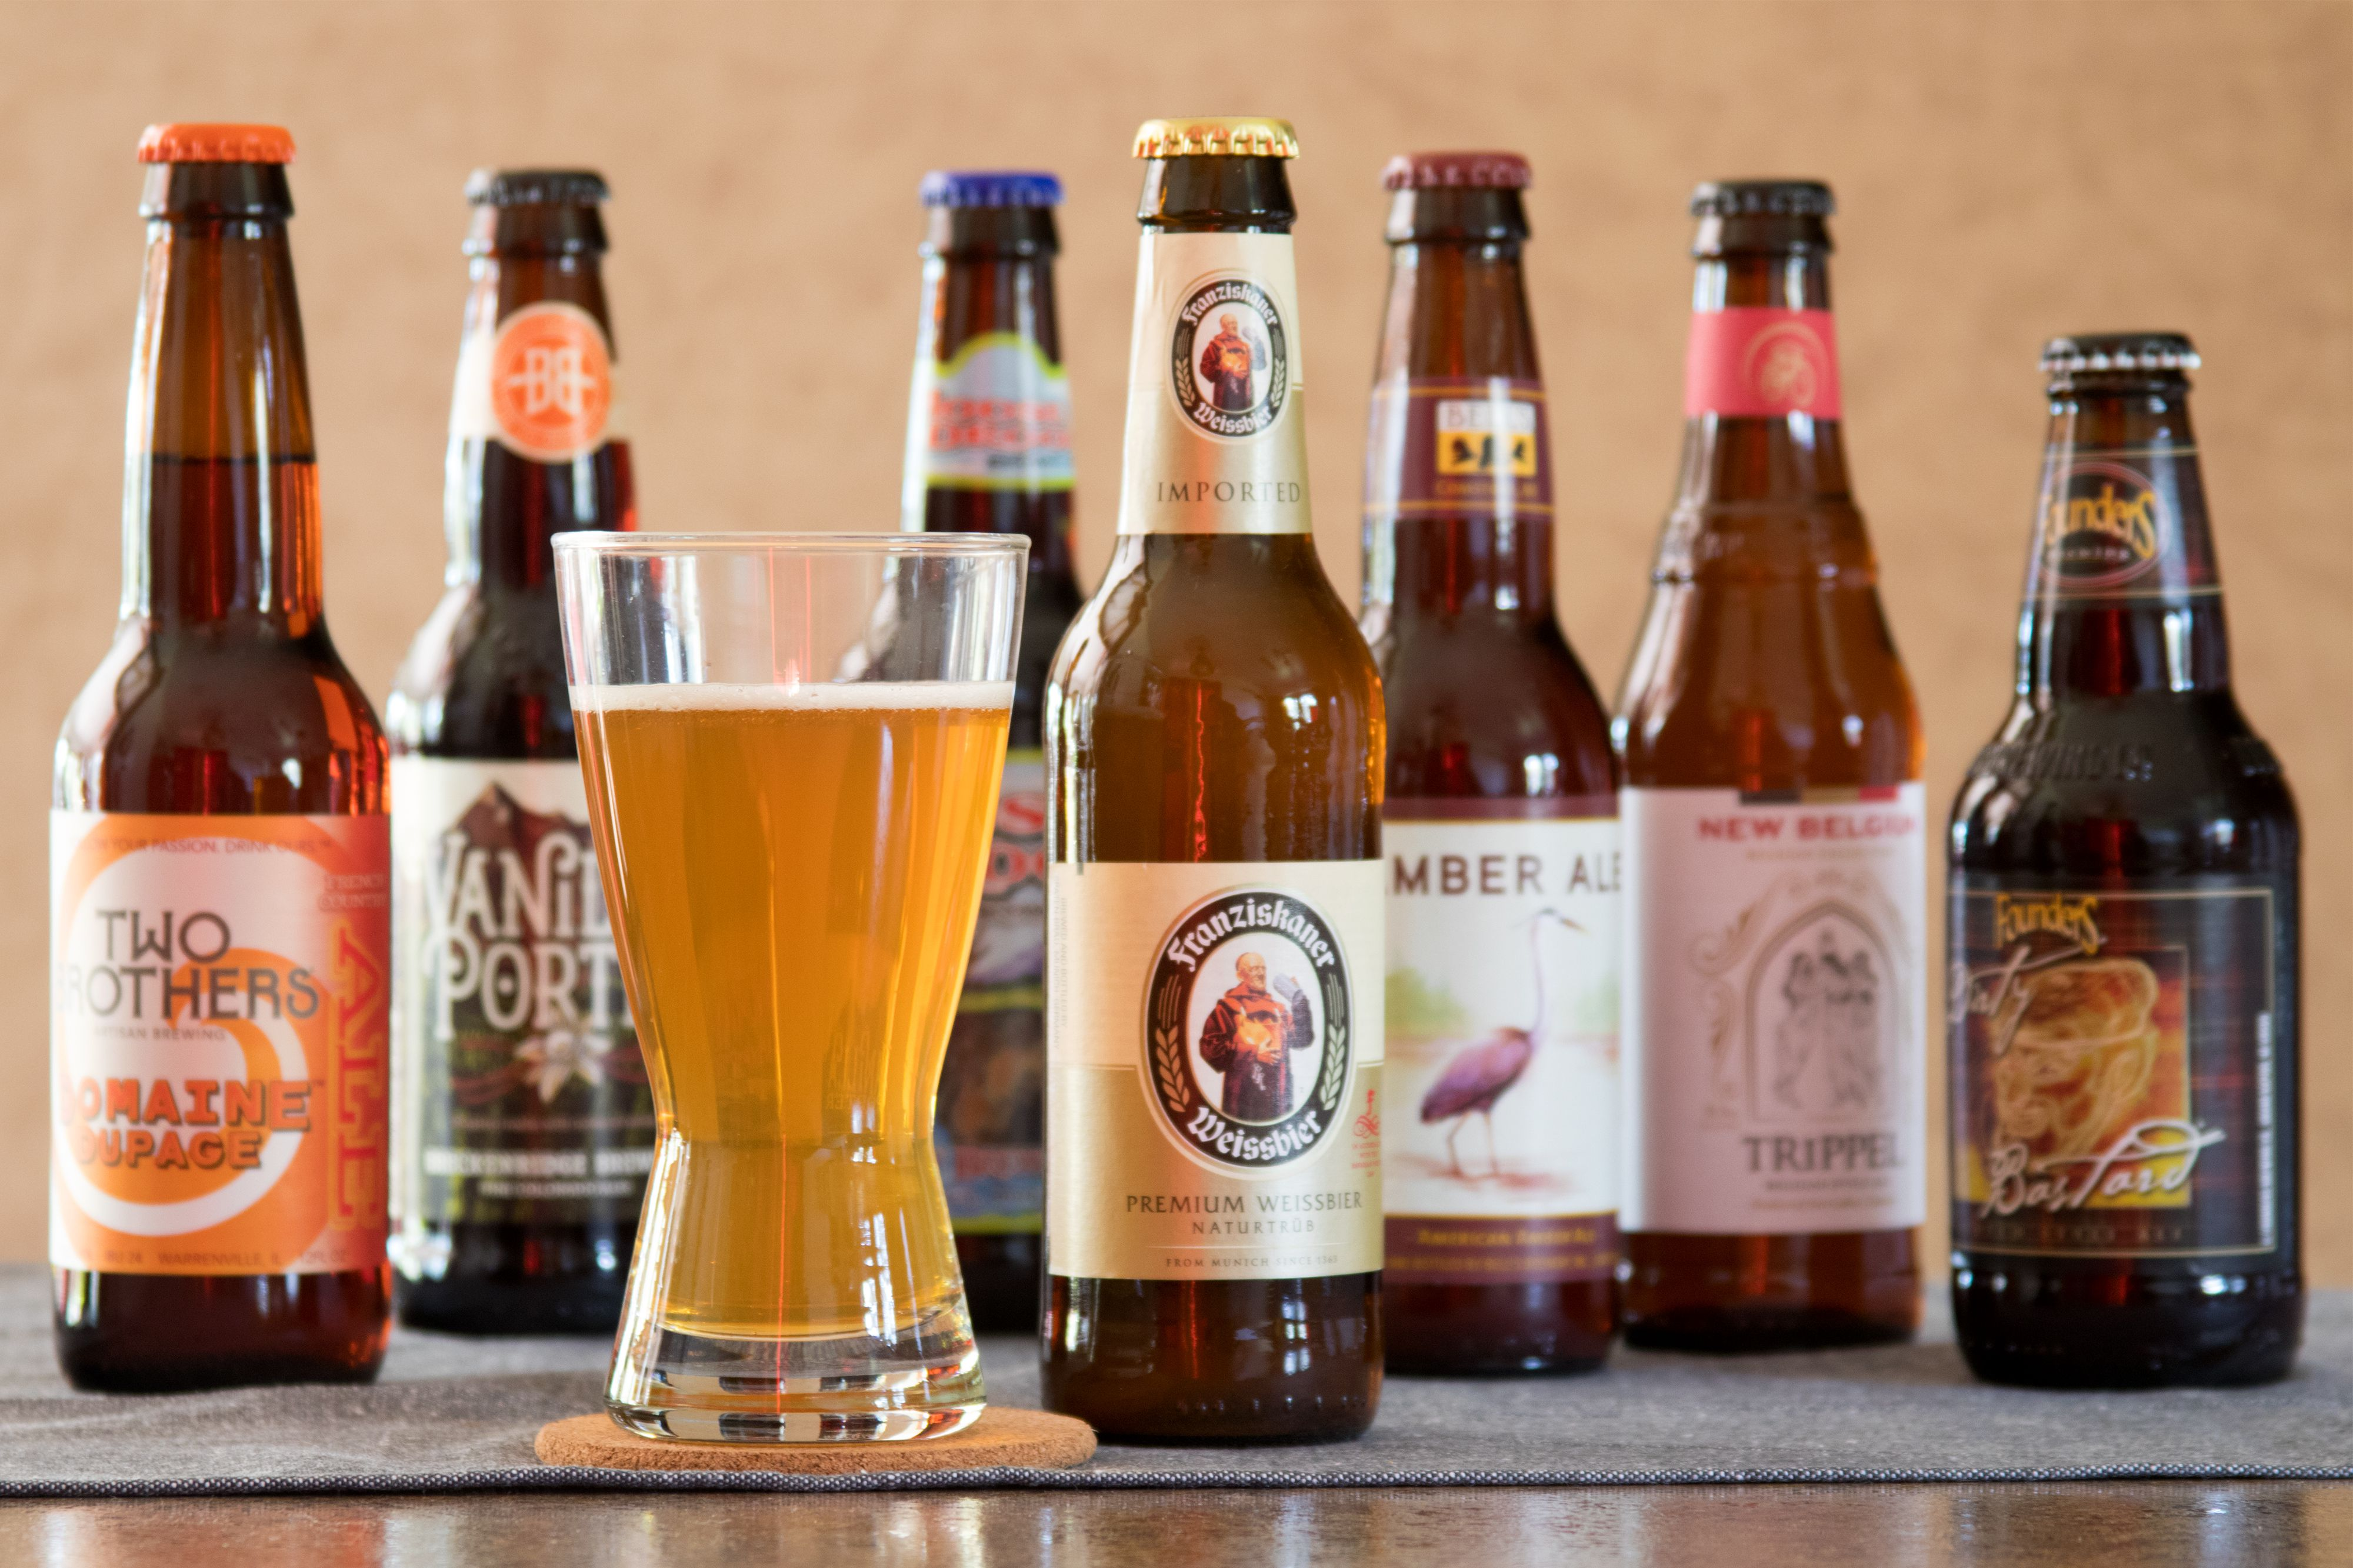 In Pictures: The Worlds Most Popular Beers